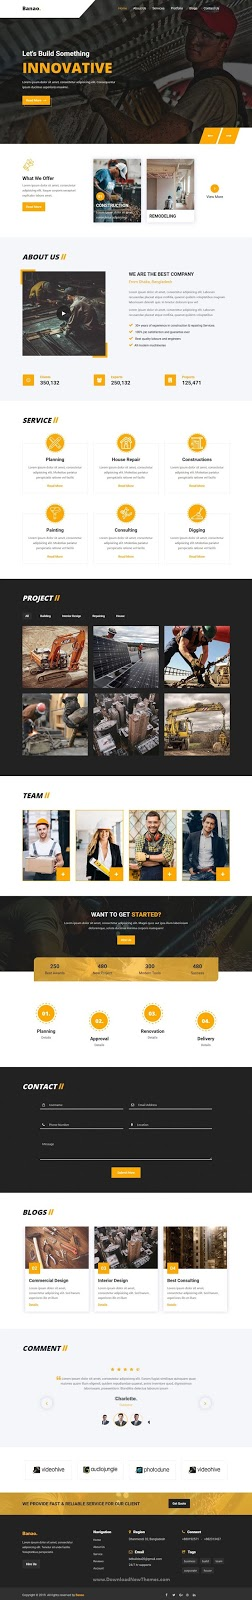 Banao - Construction HTML Template